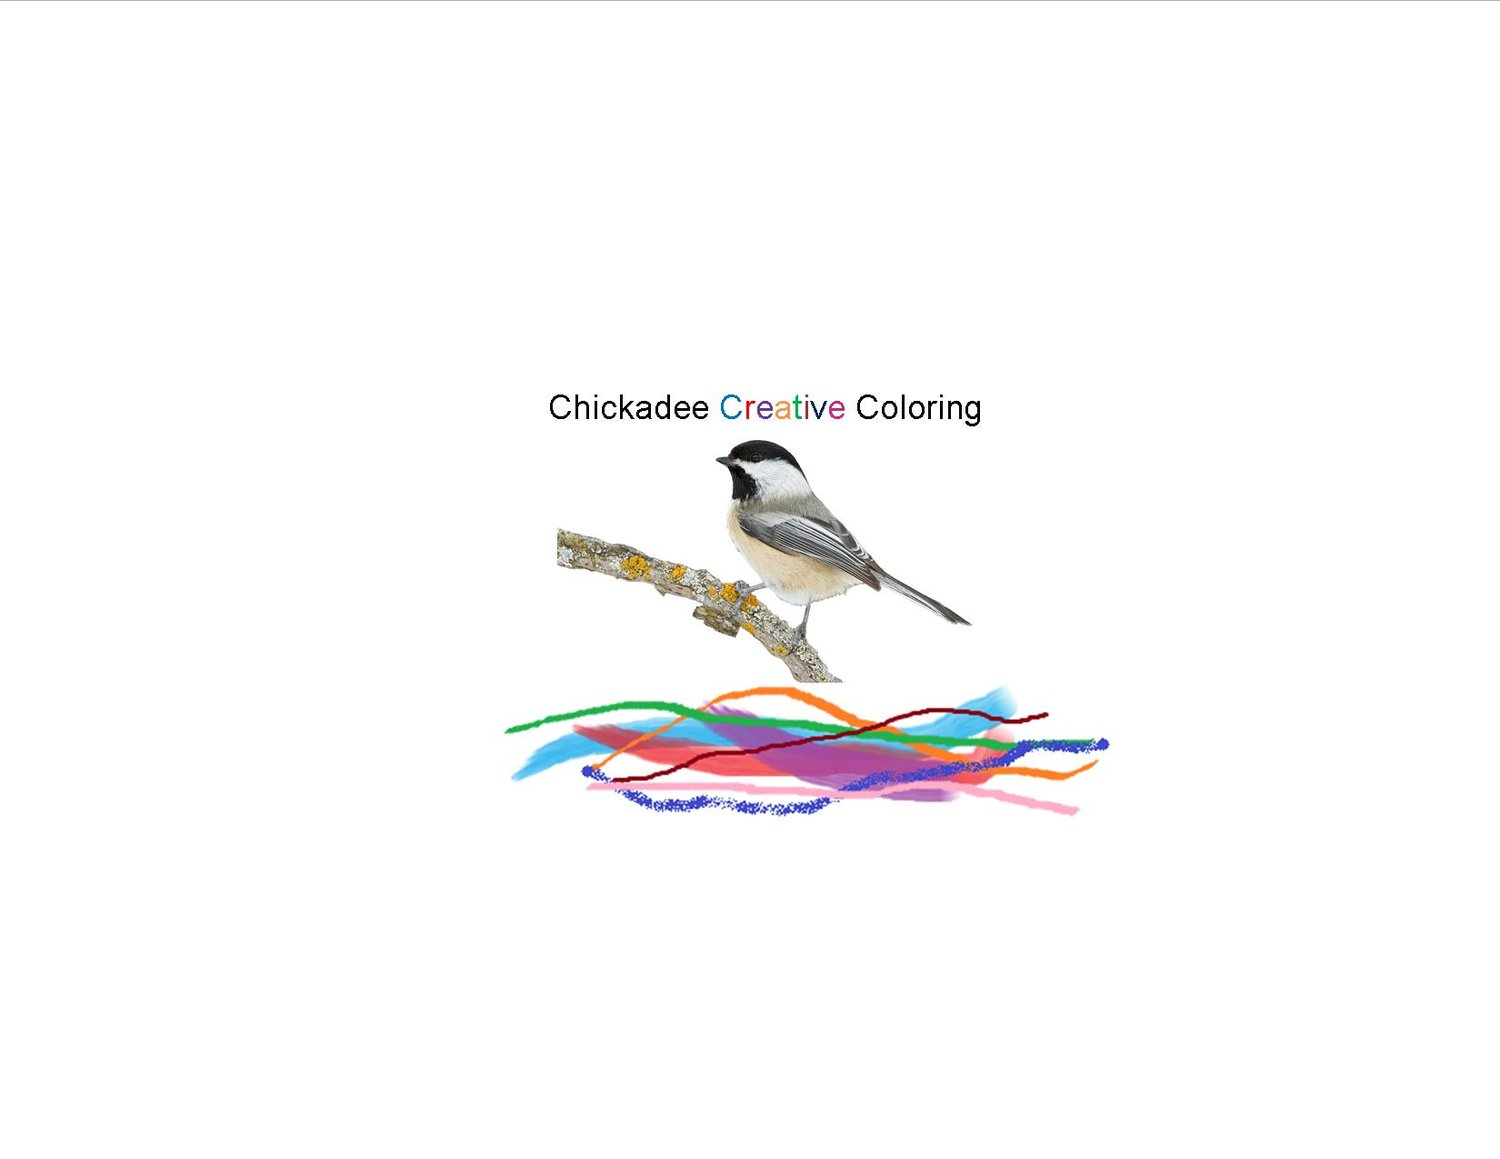 Chickadee Creative Coloring